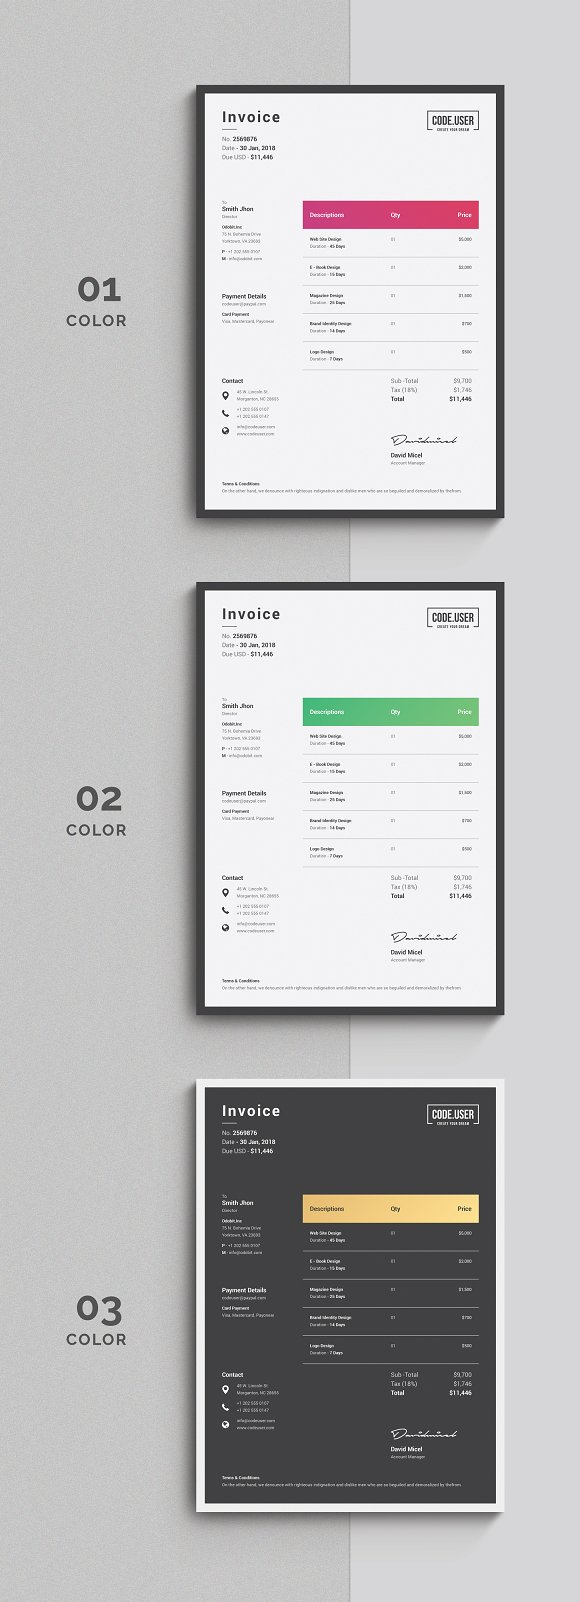 Invoice Stationery Templates Creative Market - Free business invoice templates word vapor store online